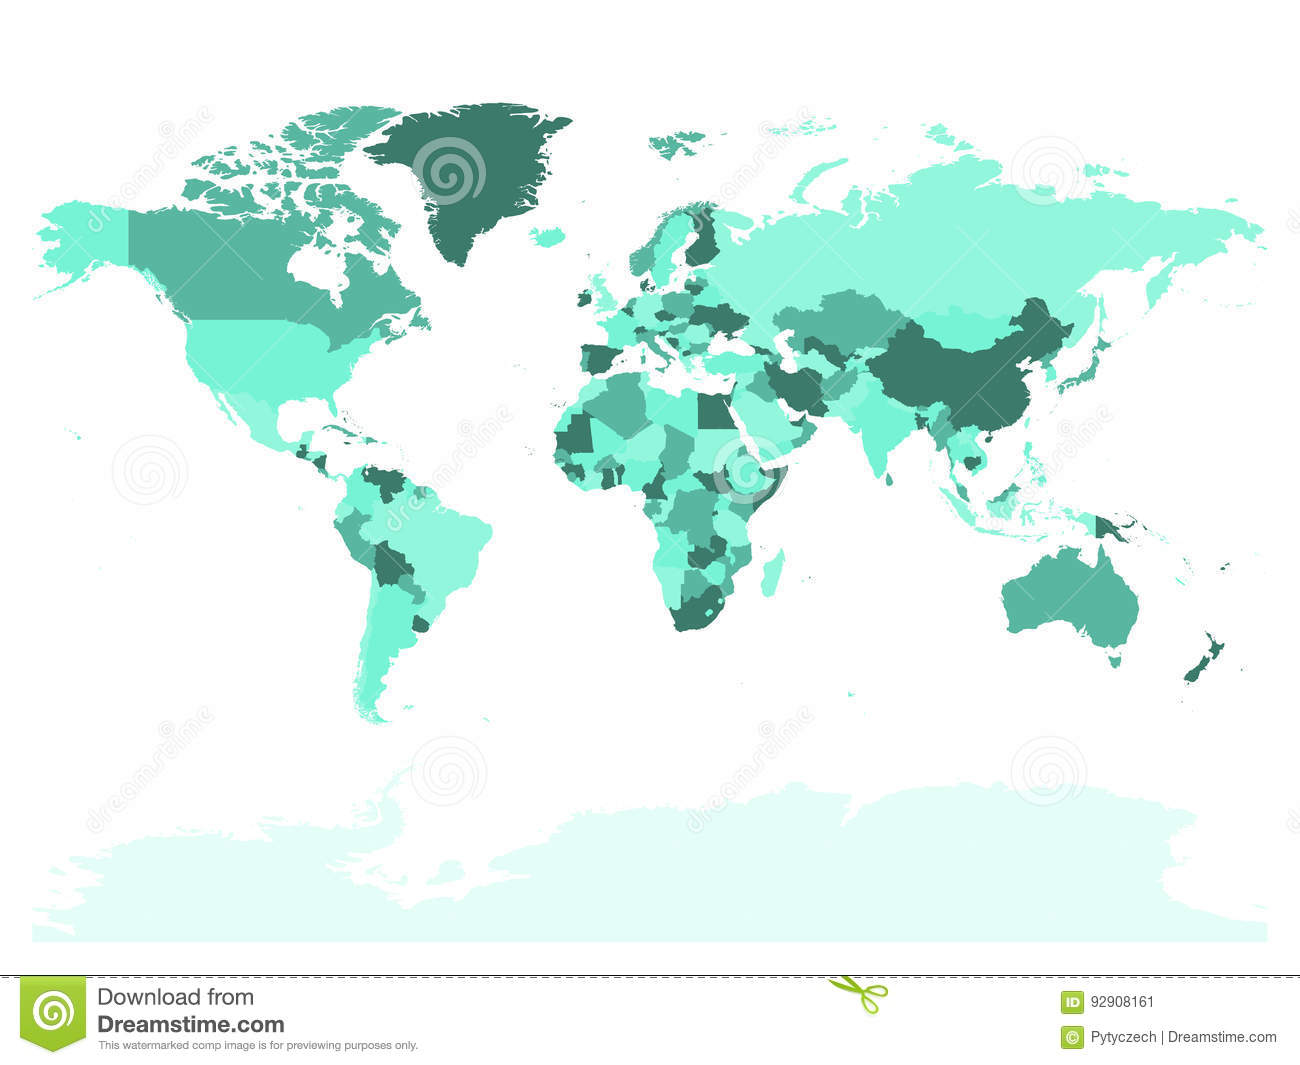 World map in four shades of turquoise on white background high download comp gumiabroncs Images